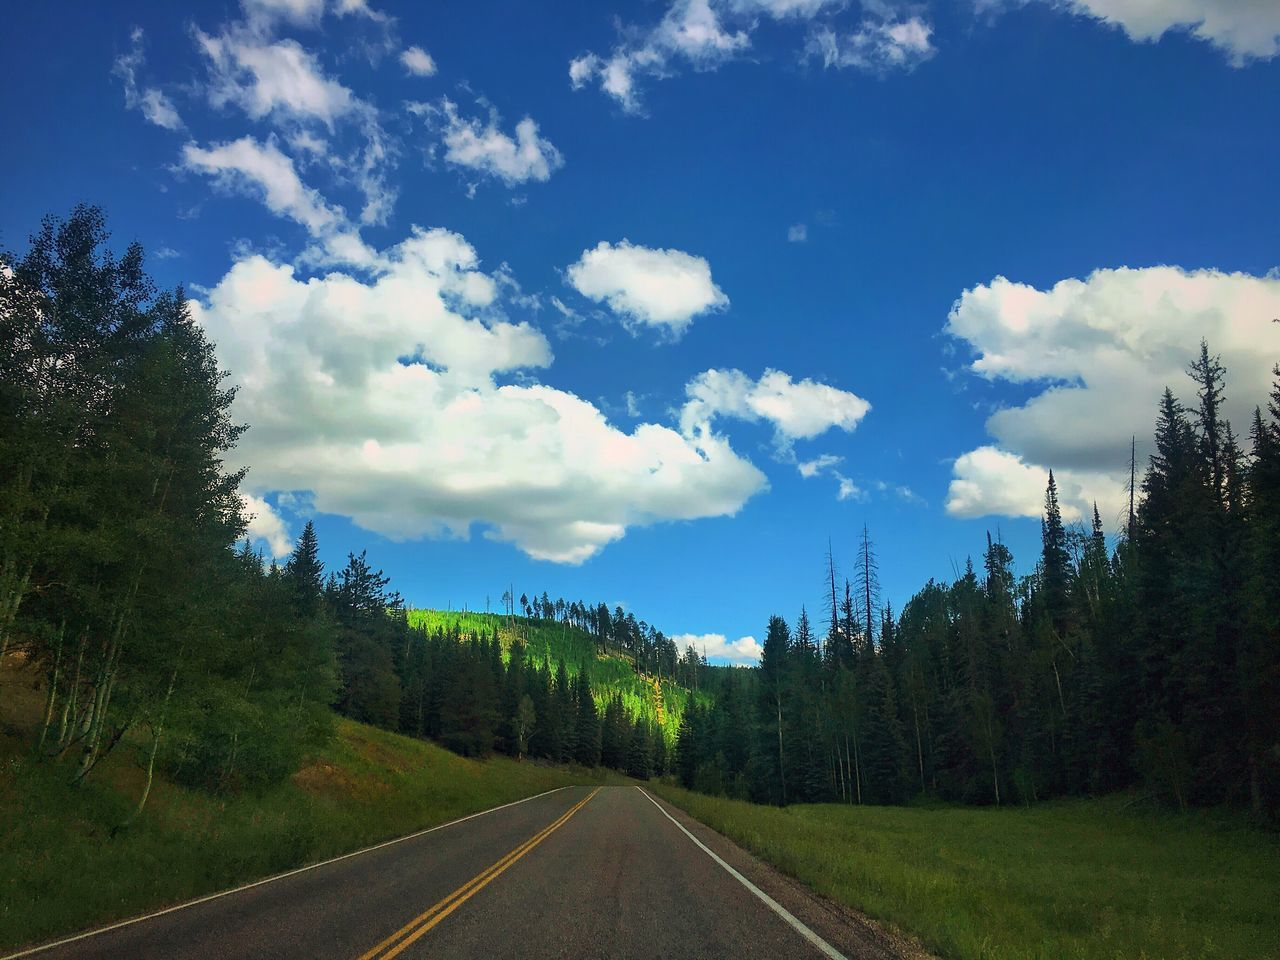 road, tree, the way forward, sky, transportation, cloud - sky, tranquility, nature, no people, tranquil scene, day, scenics, outdoors, landscape, beauty in nature